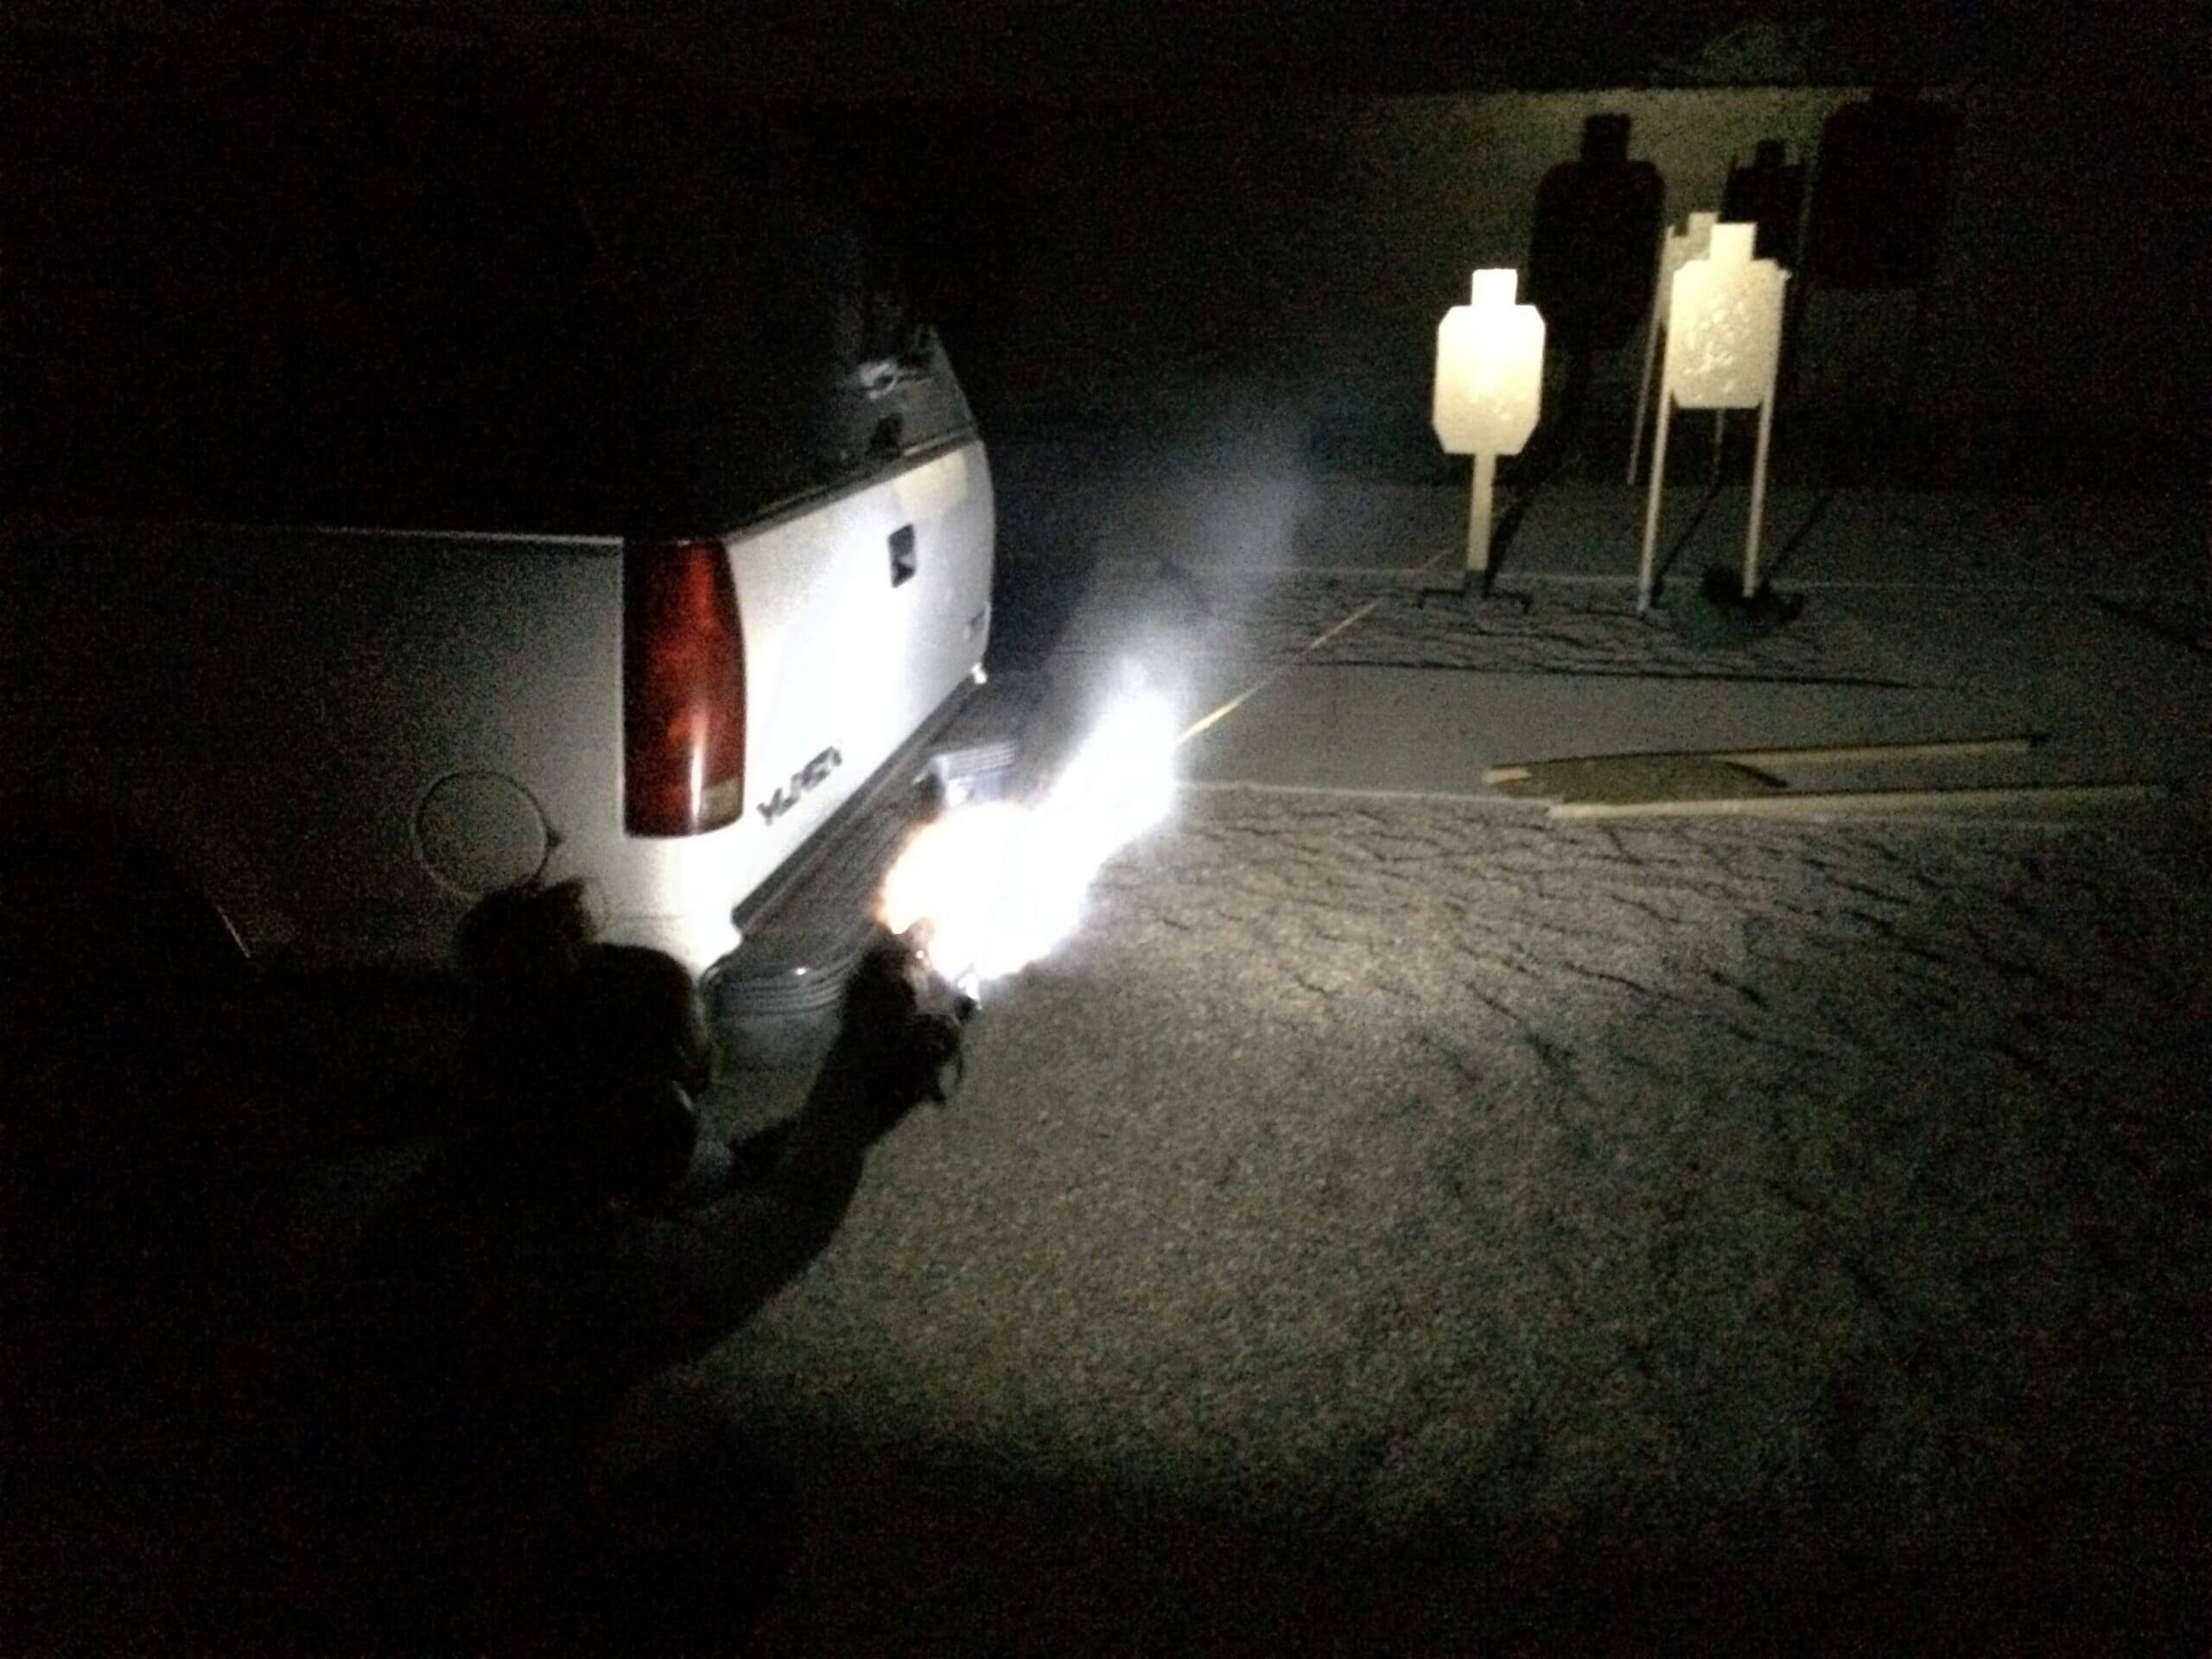 Night Pistol Fighting